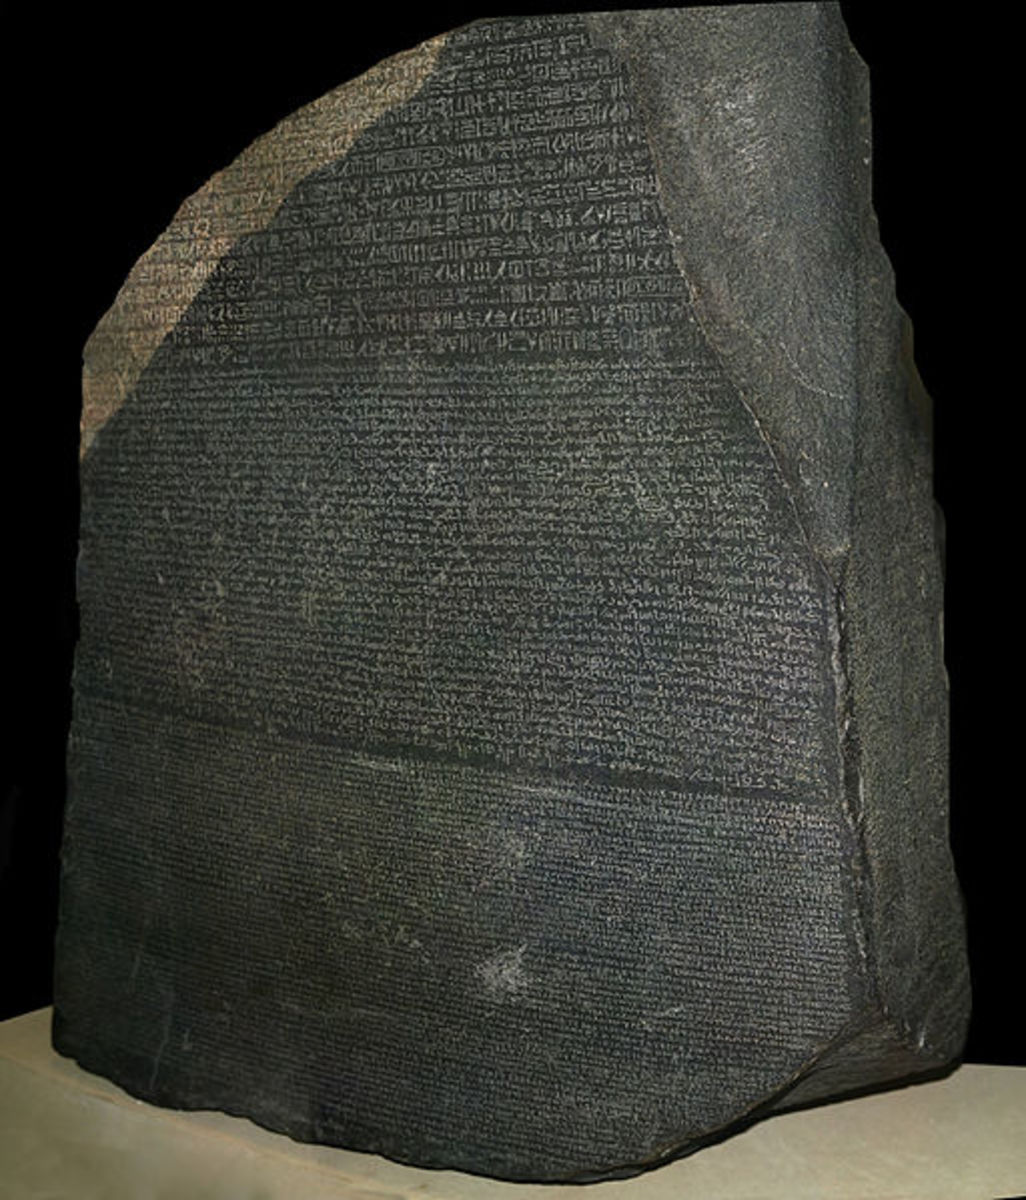 The famous stone that unravelled the mystery of the Egyptian written language.